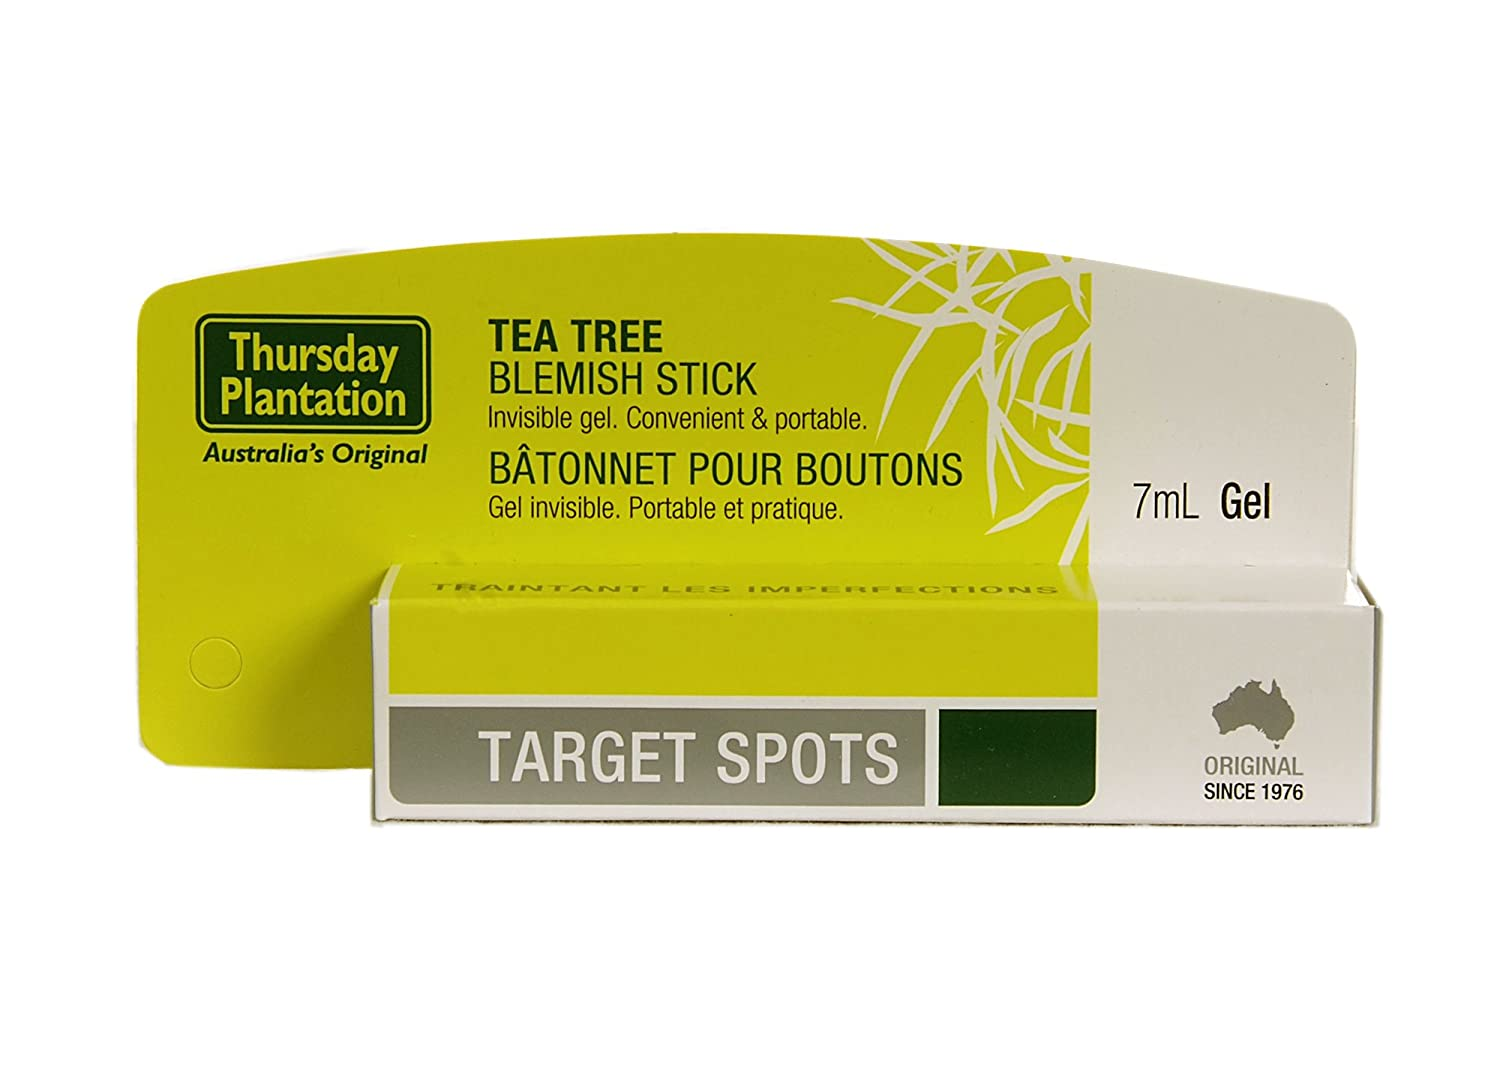 Thursday Plantation Tea Tree Blemish Stick Gel 7ml